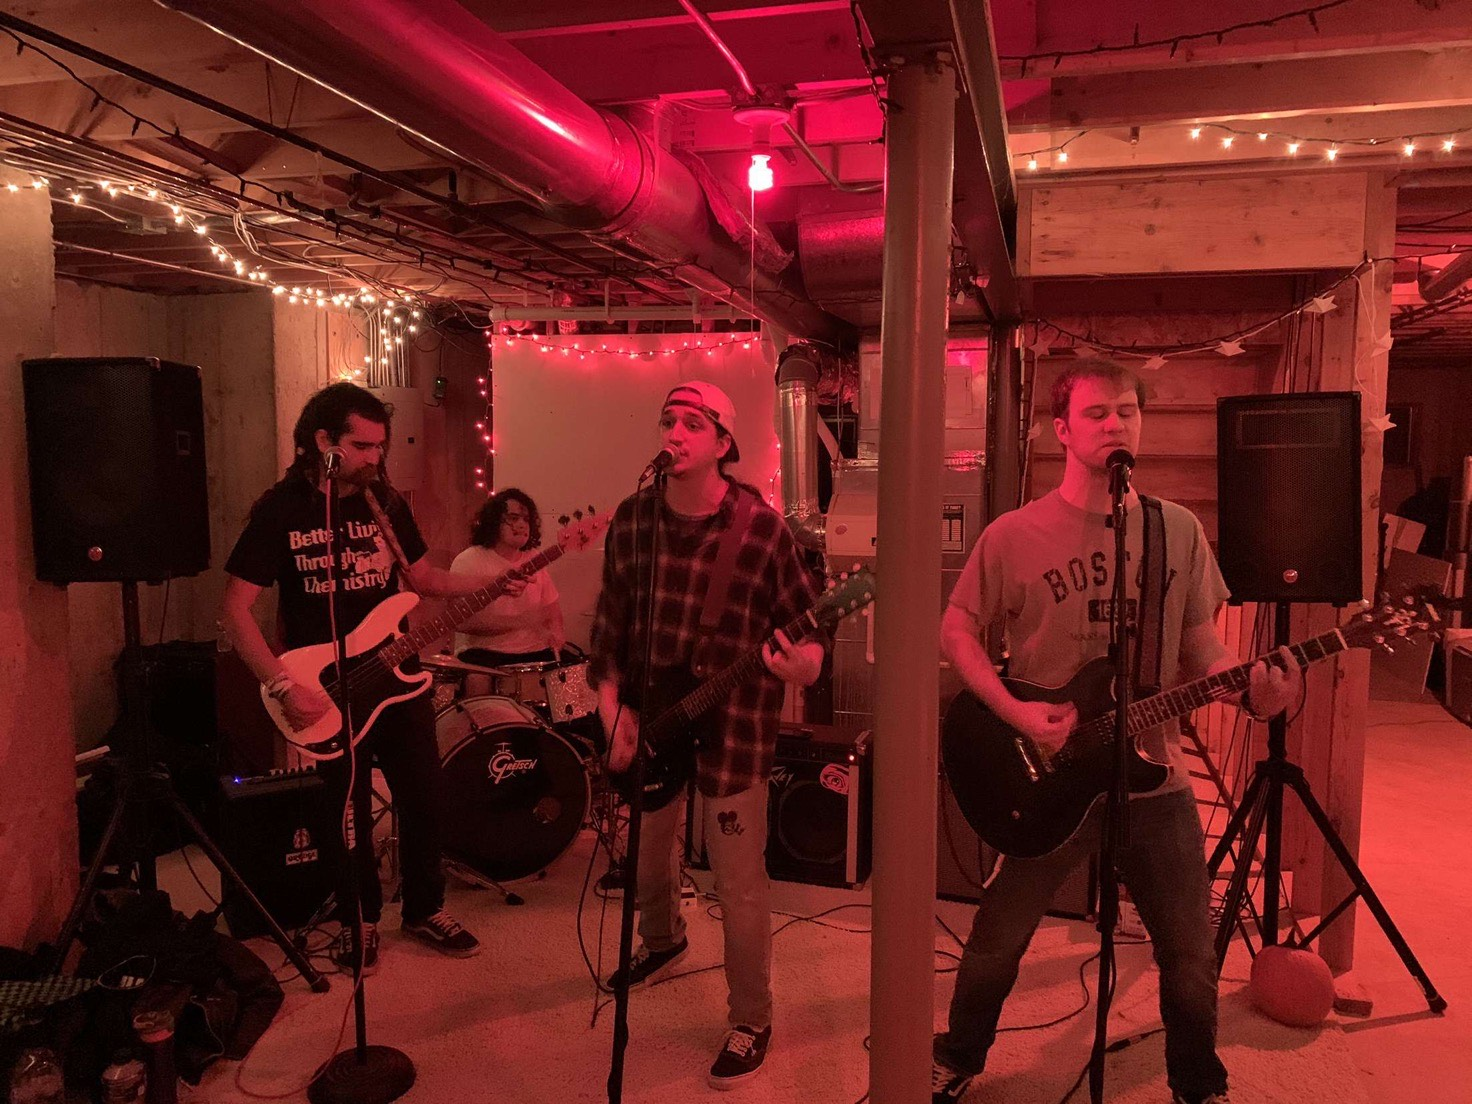 The Grow Ops playing a show at The Darkroom earlier this month.